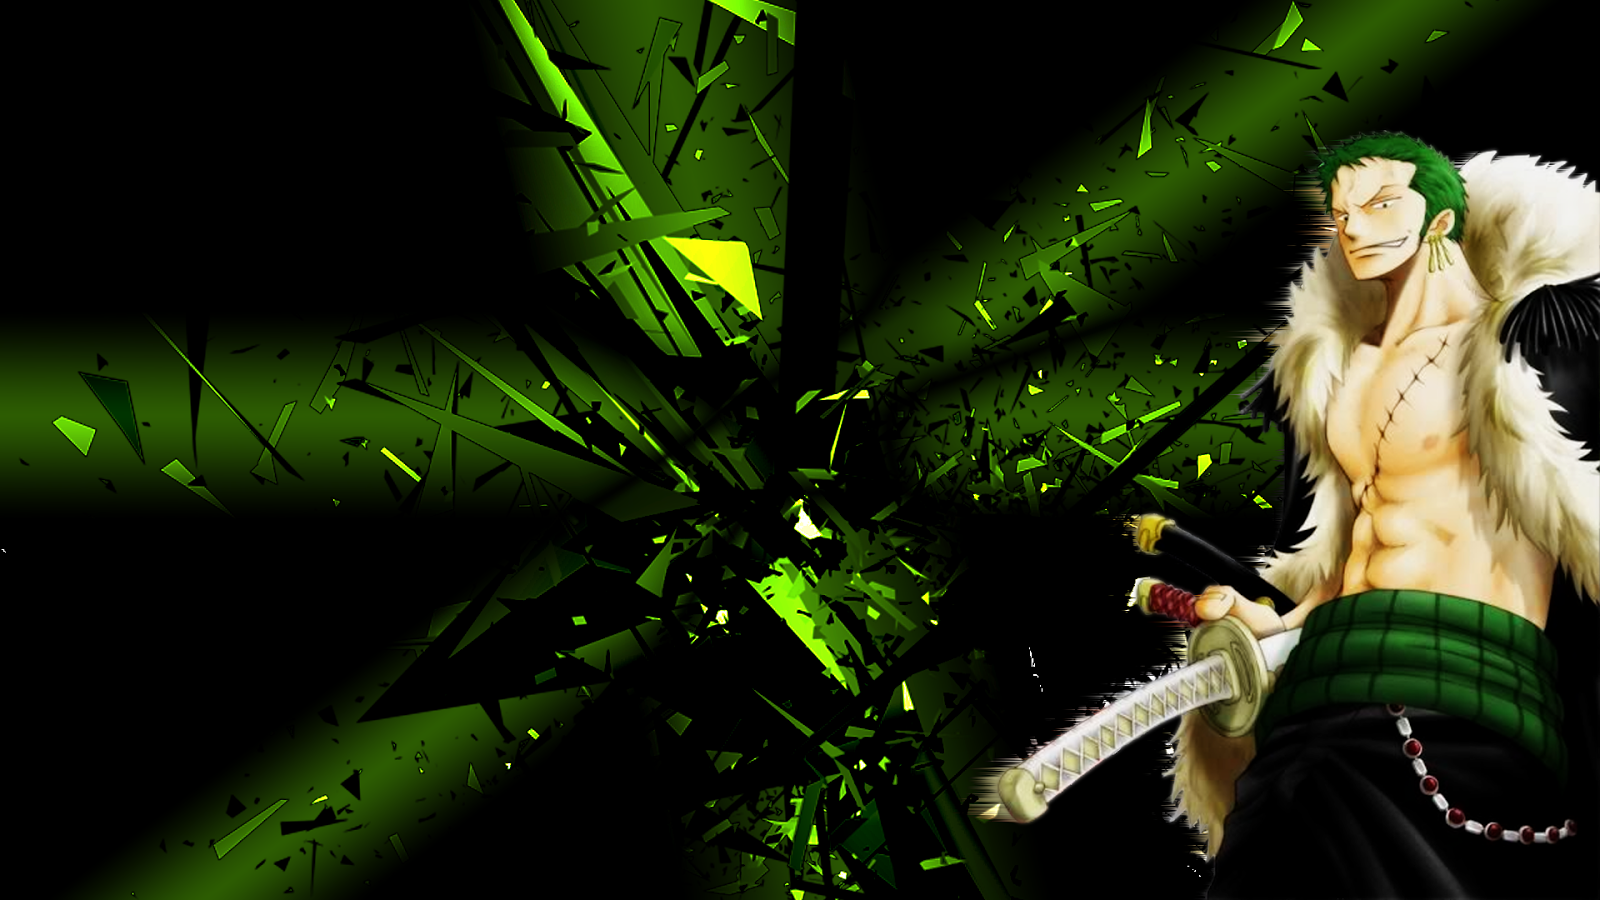 backgrounds for laptop or computer Roronoa Zoro One Piece 1600x900